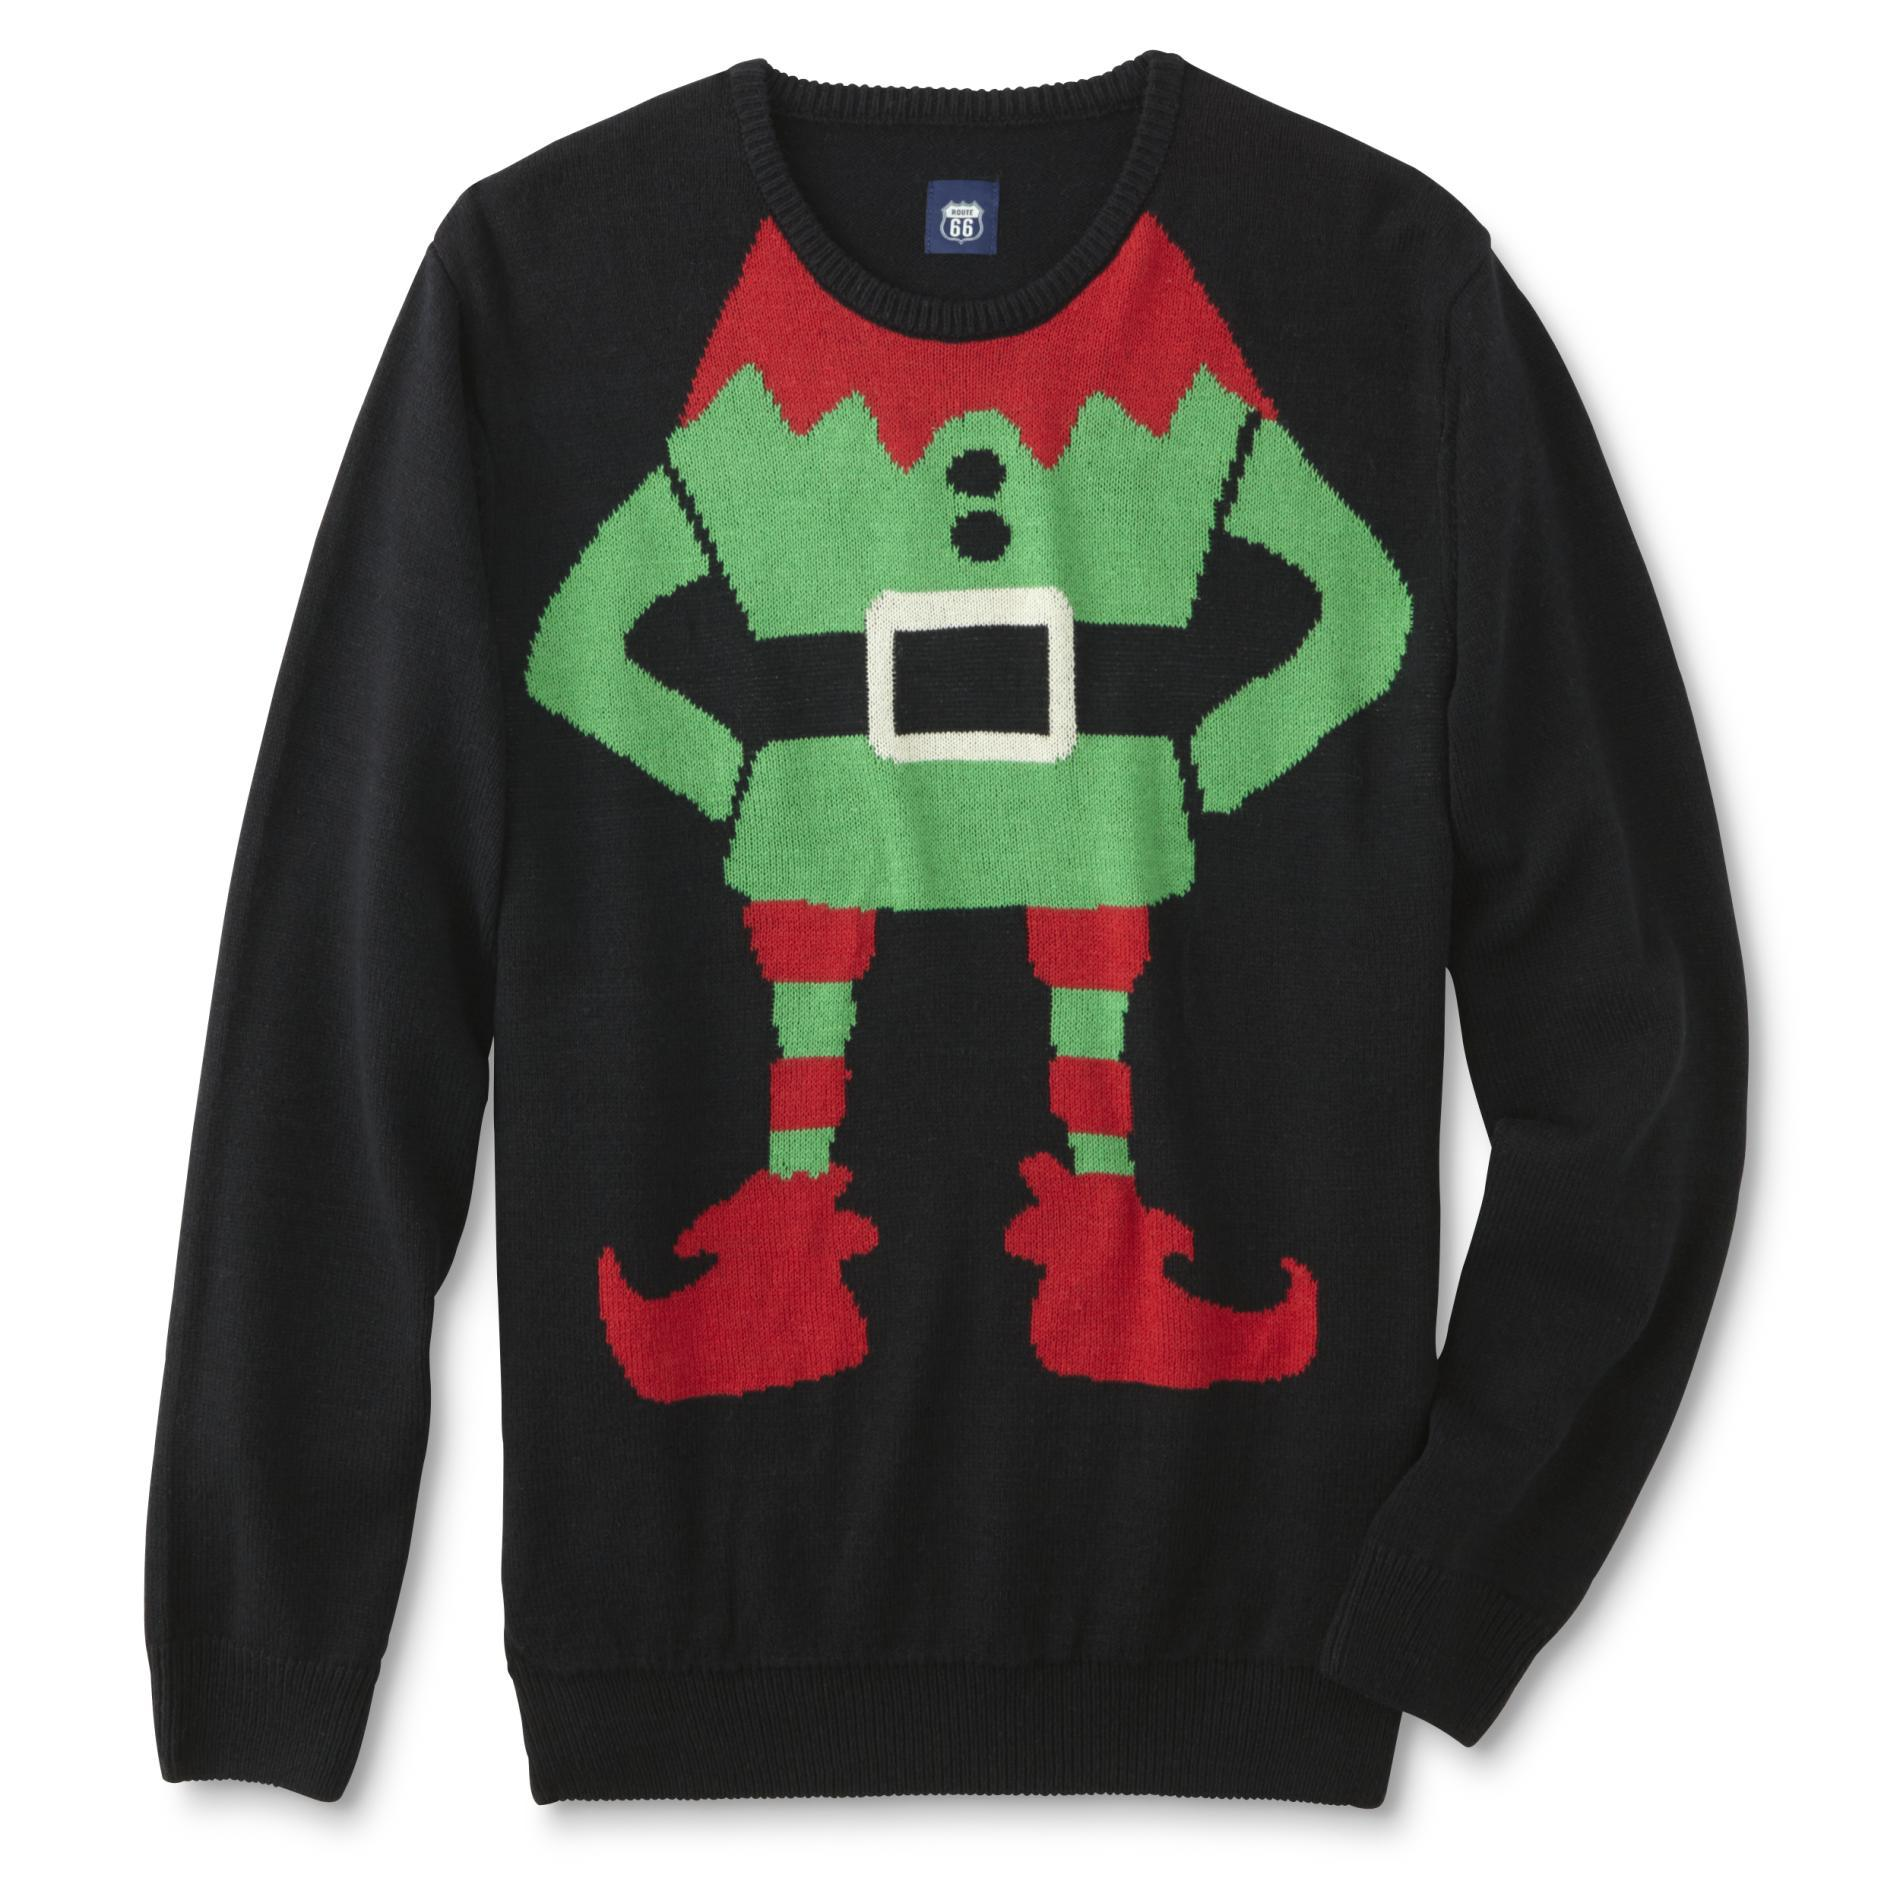 Route 66 Men's Big & Tall Ugly Christmas Sweater - Elf